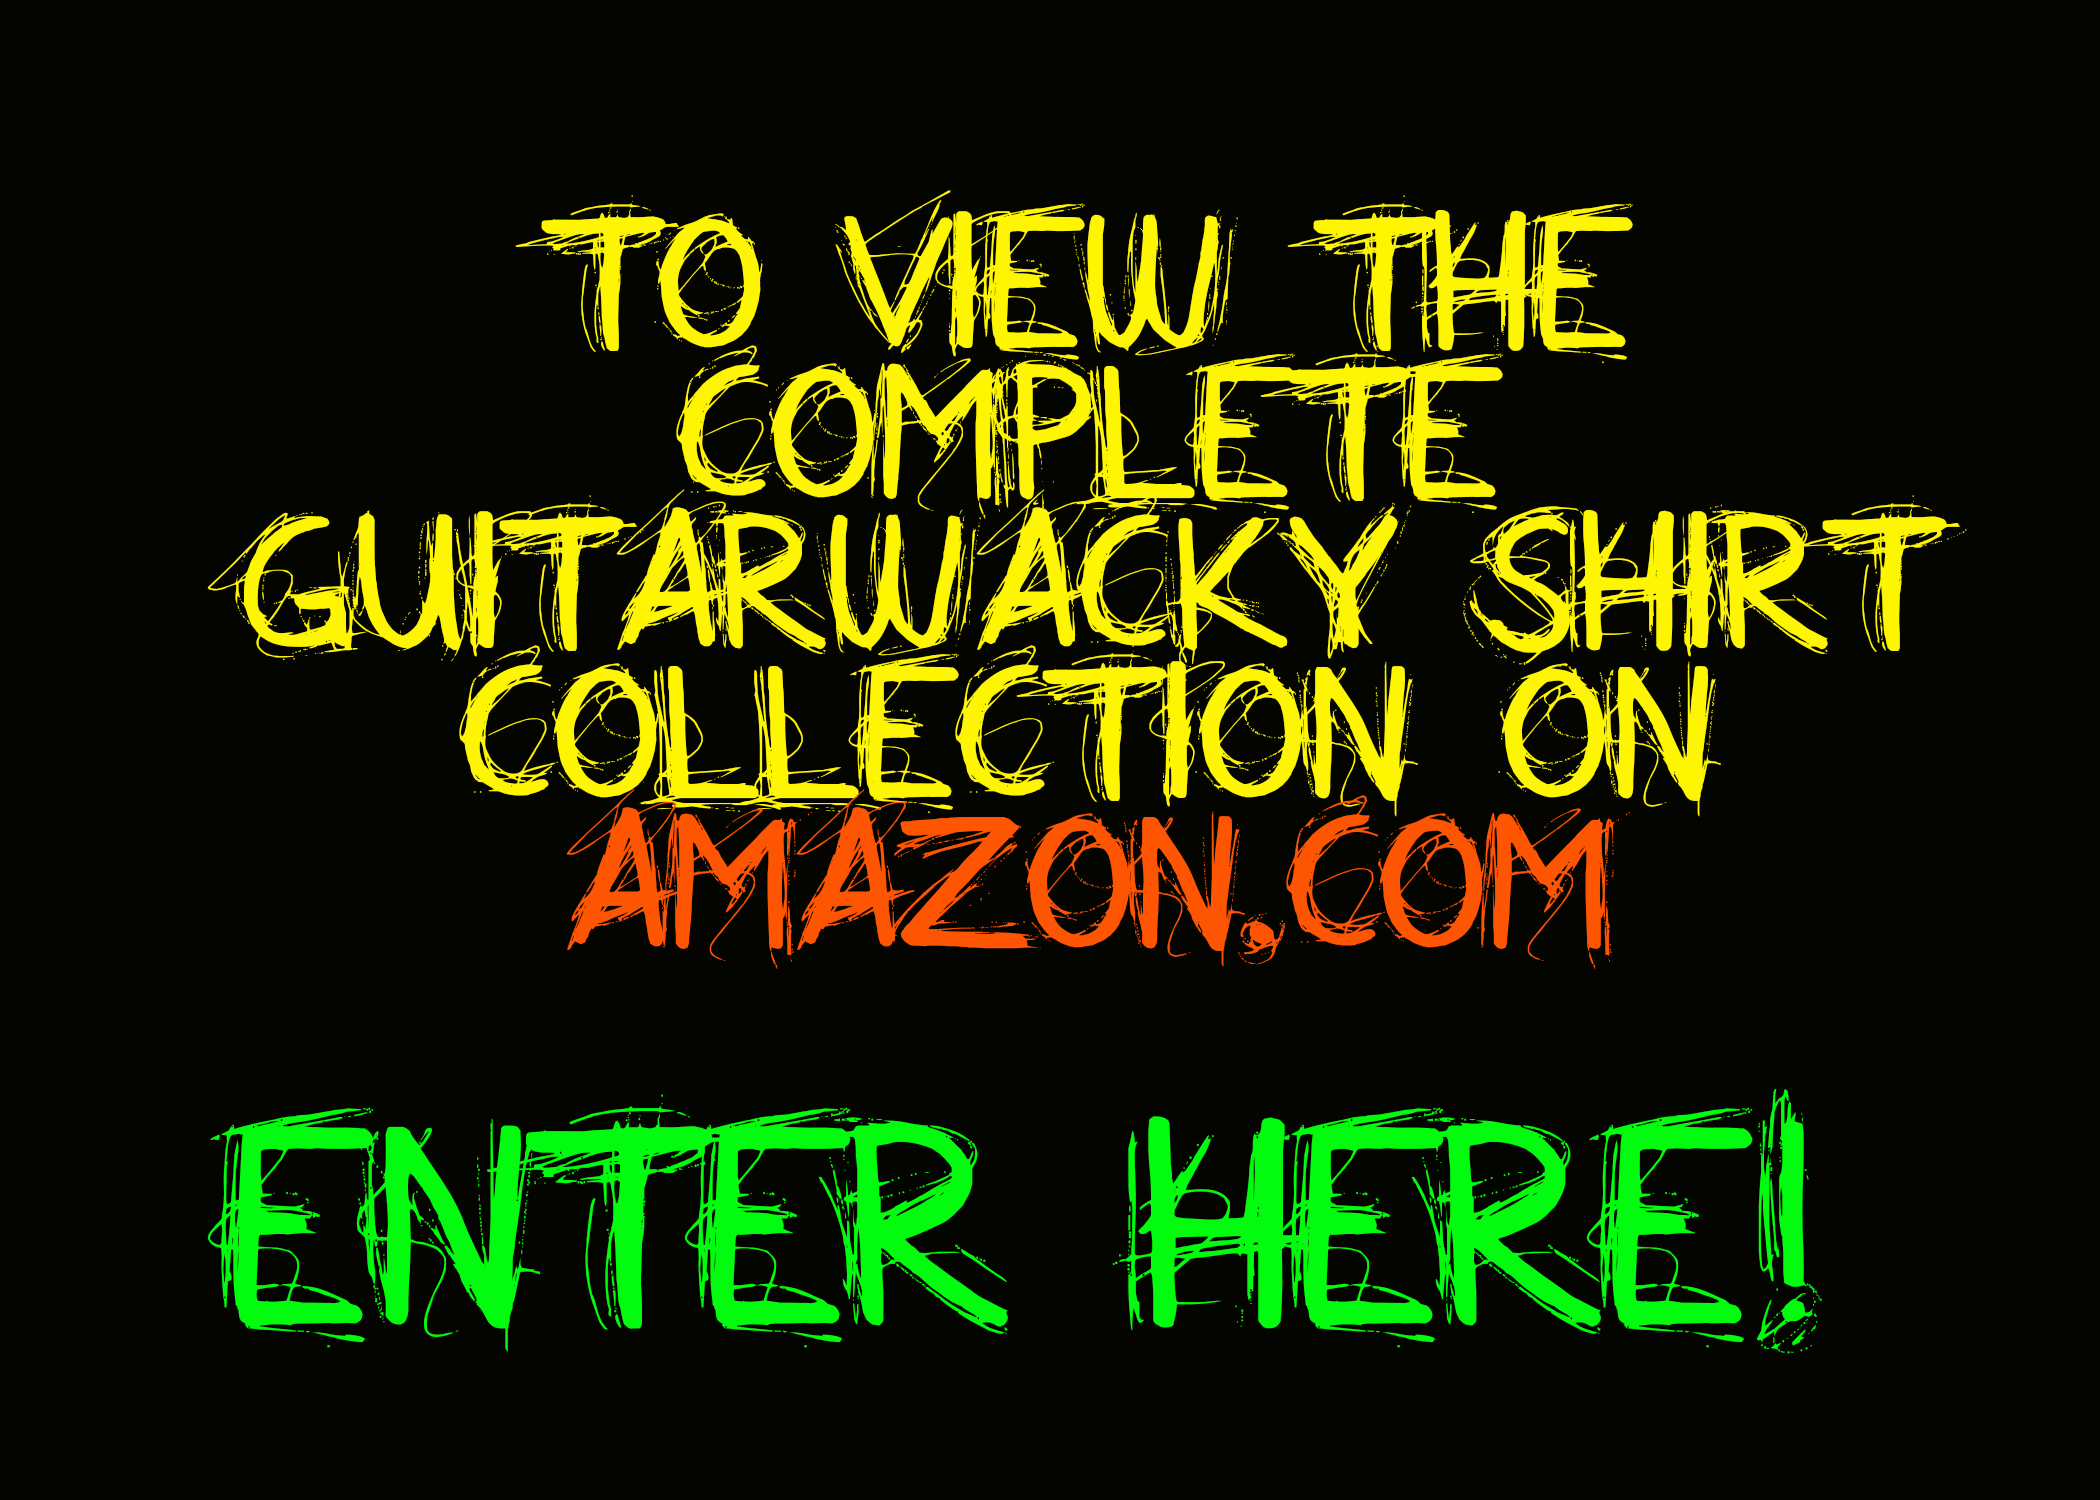 Guitarwacky.com T-Shirt Collection on Amazon